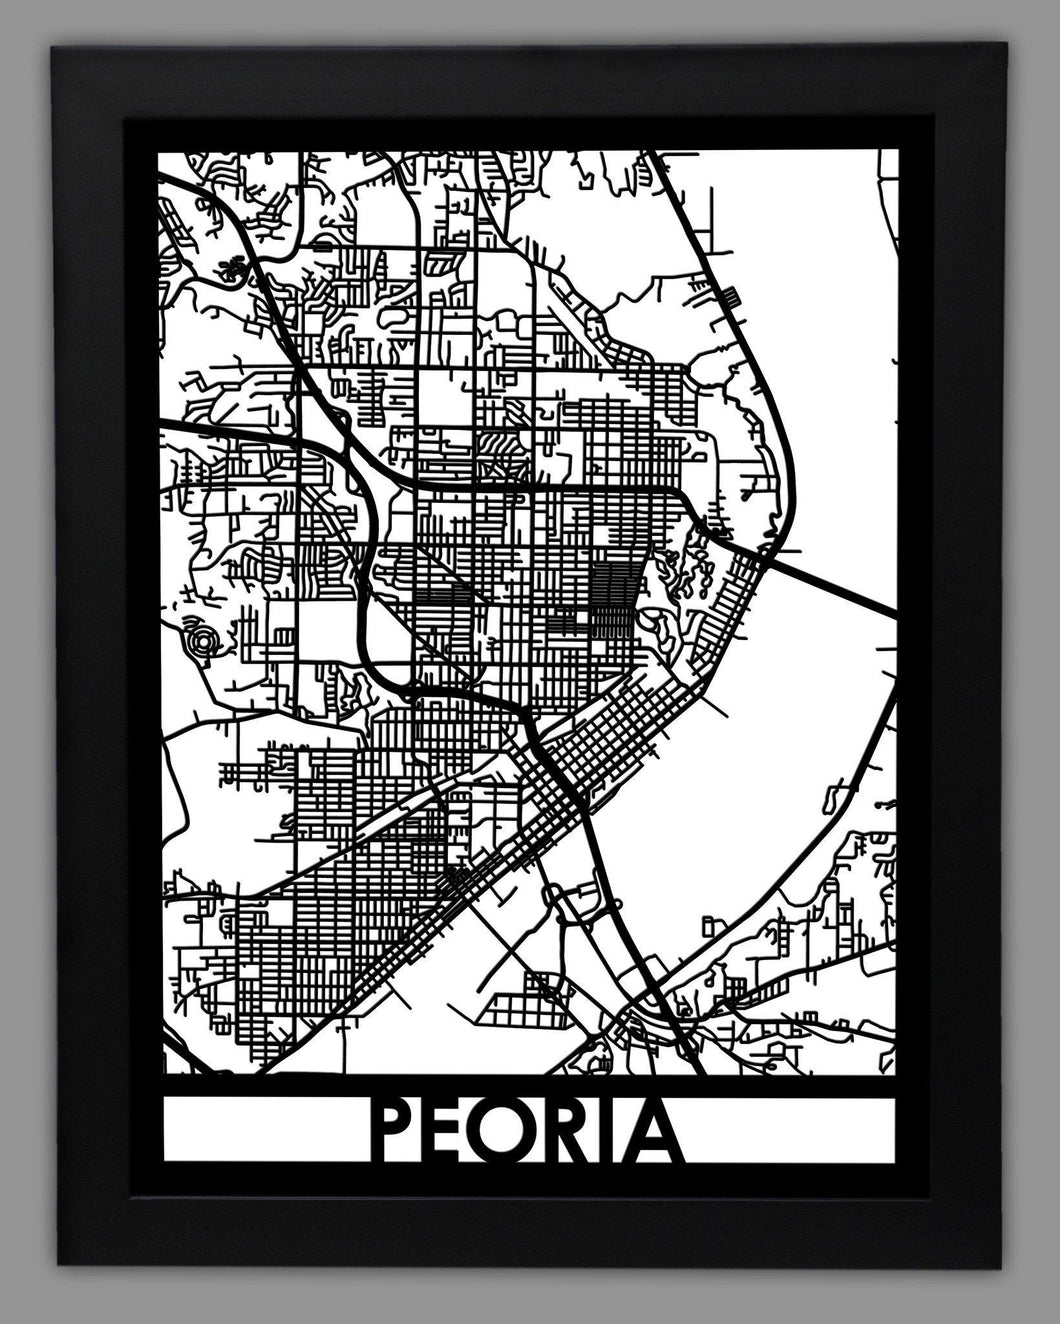 Peoria - Cool Cut Map Gift